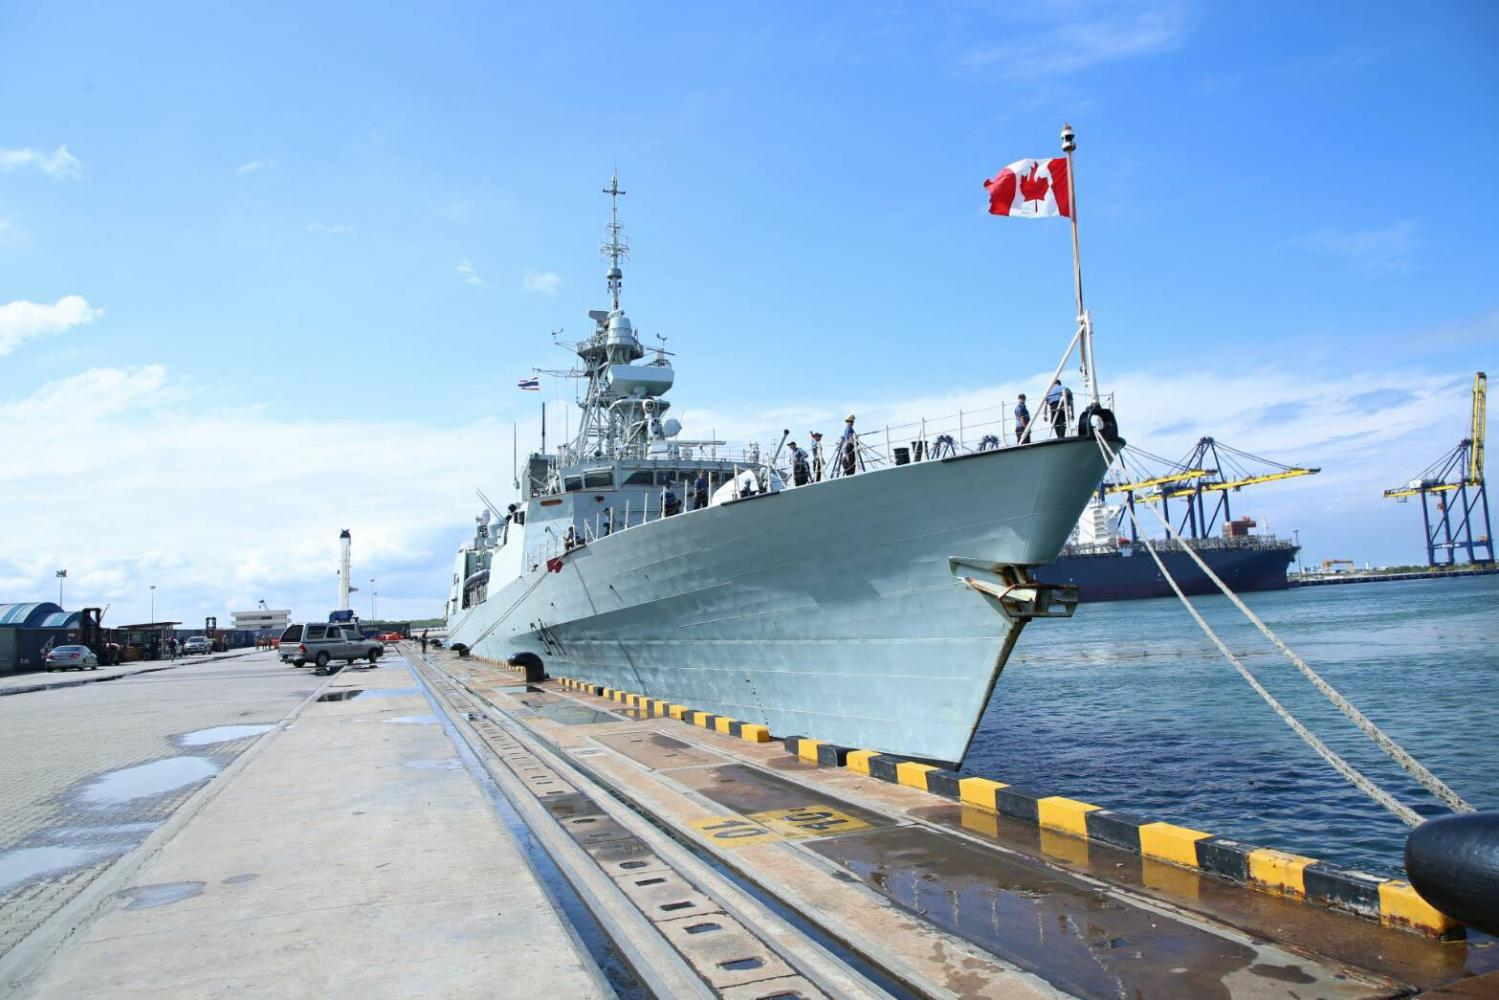 HMCS 'Ottawa' is making a port call at Laem Chabang until Thursday. Canadian embassy